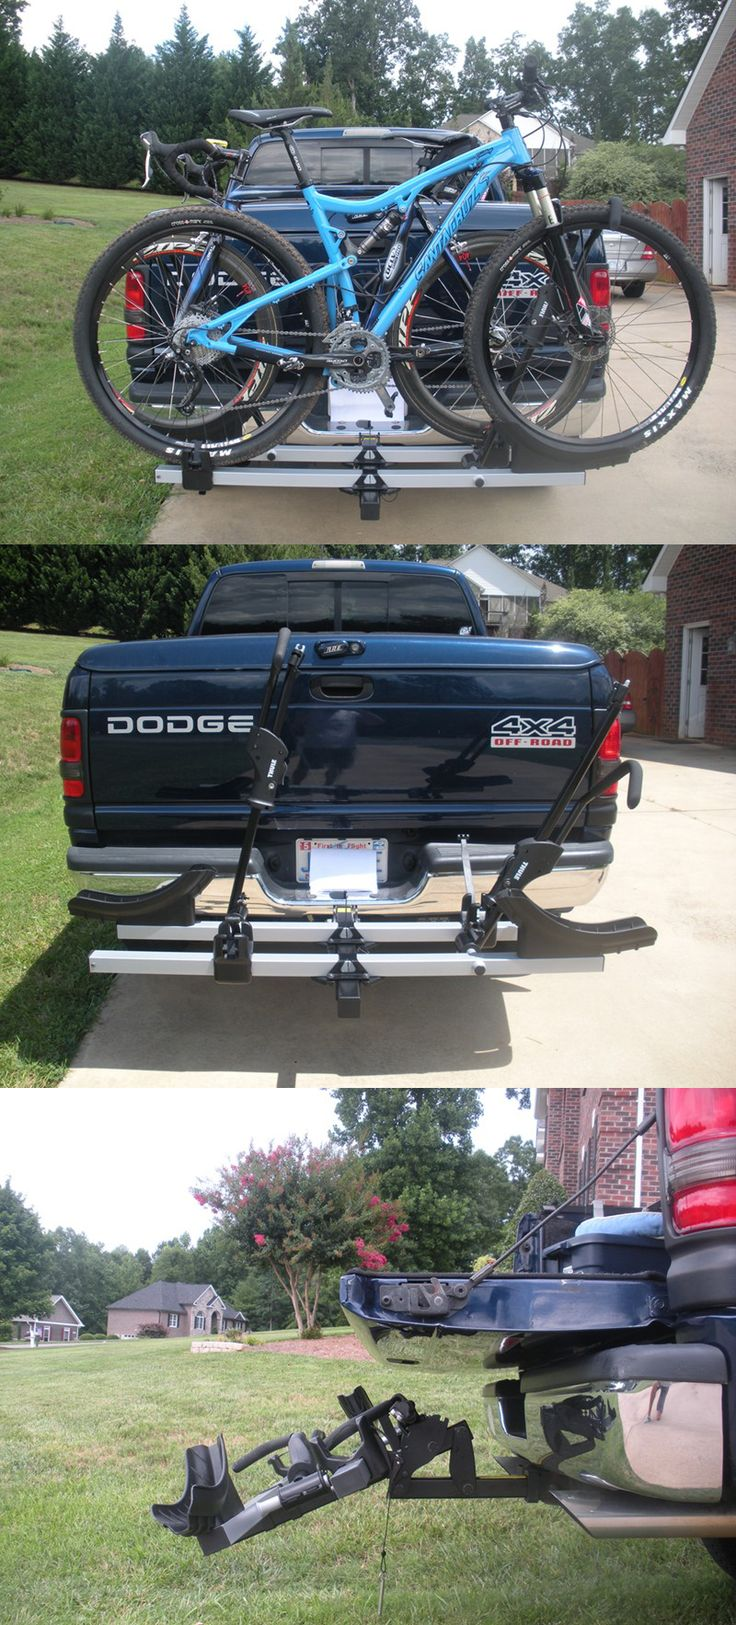 Thule platform bike rack for up to 2 bikes! This is a necessity when it comes to car accessories for bike lovers! Includes built in cable locks and tilts down for easy rear-of-vehicle access!